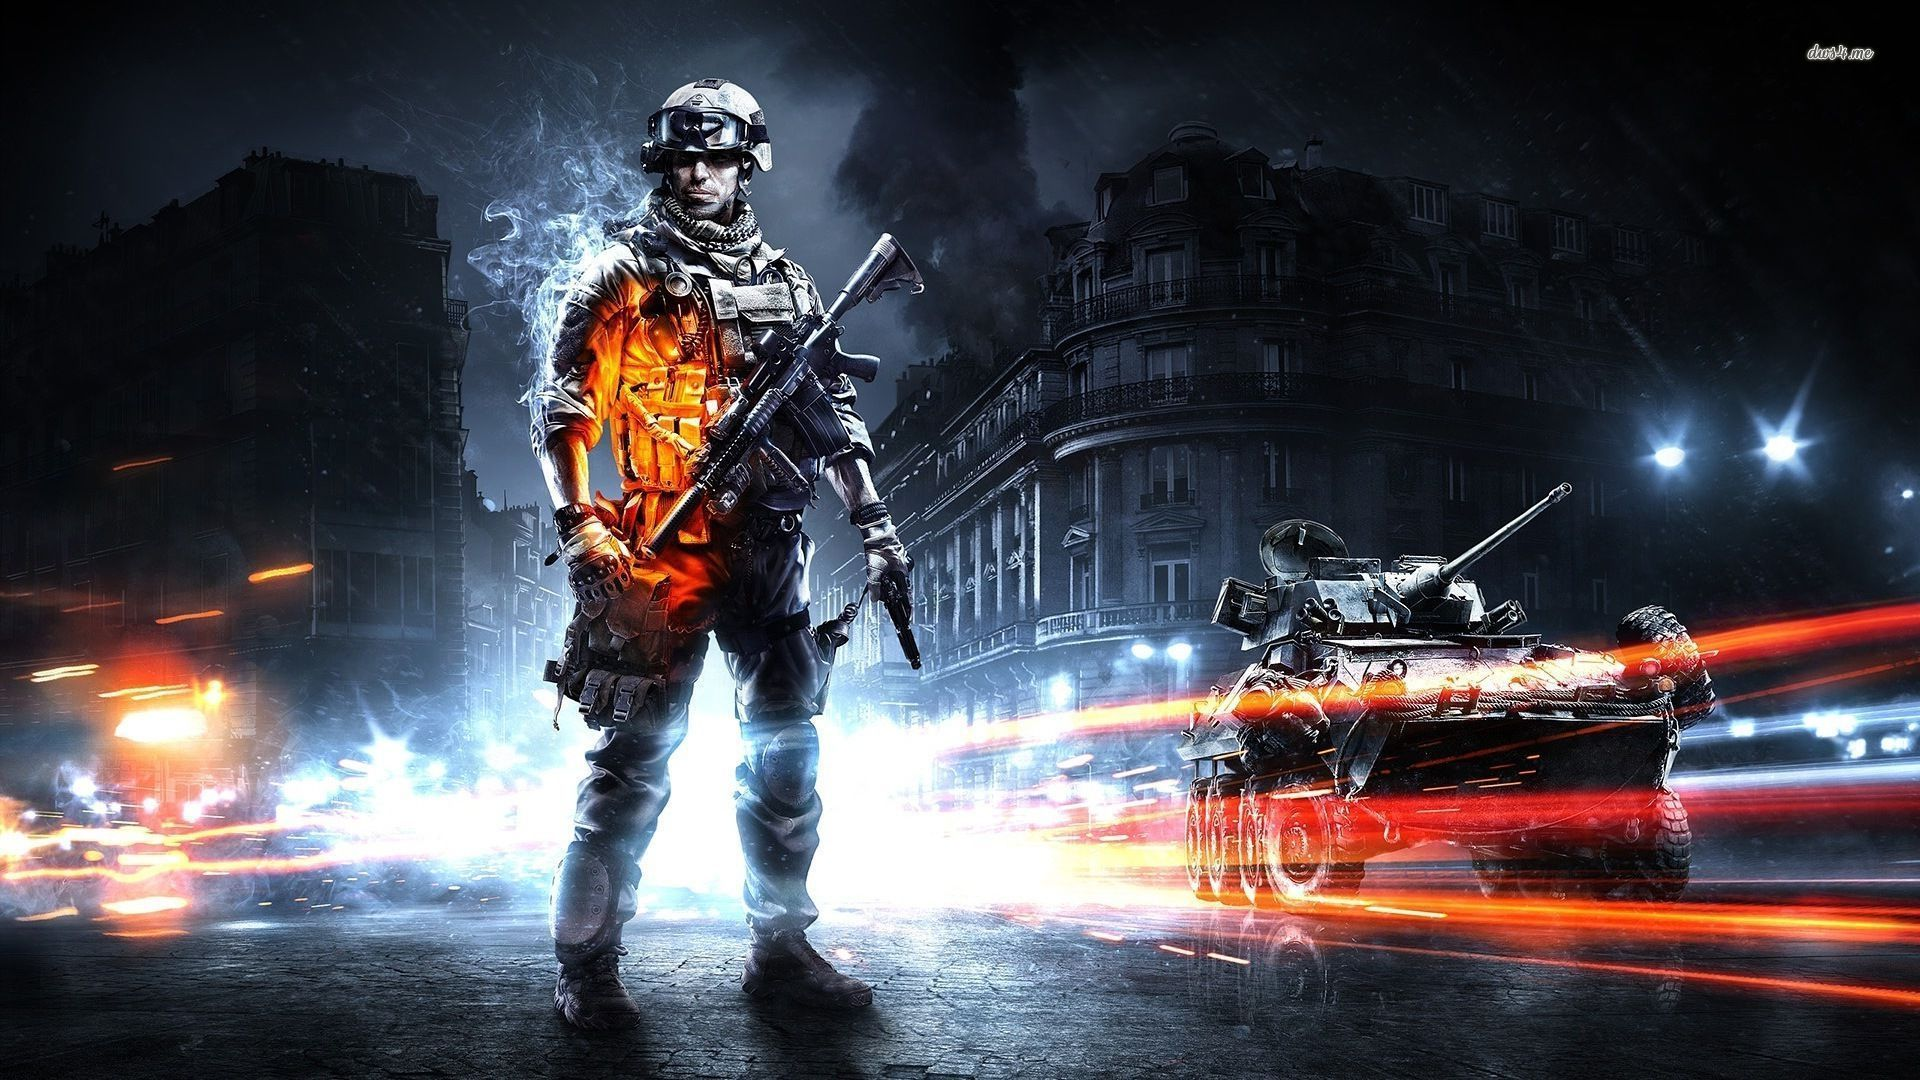 Bf3 pc download